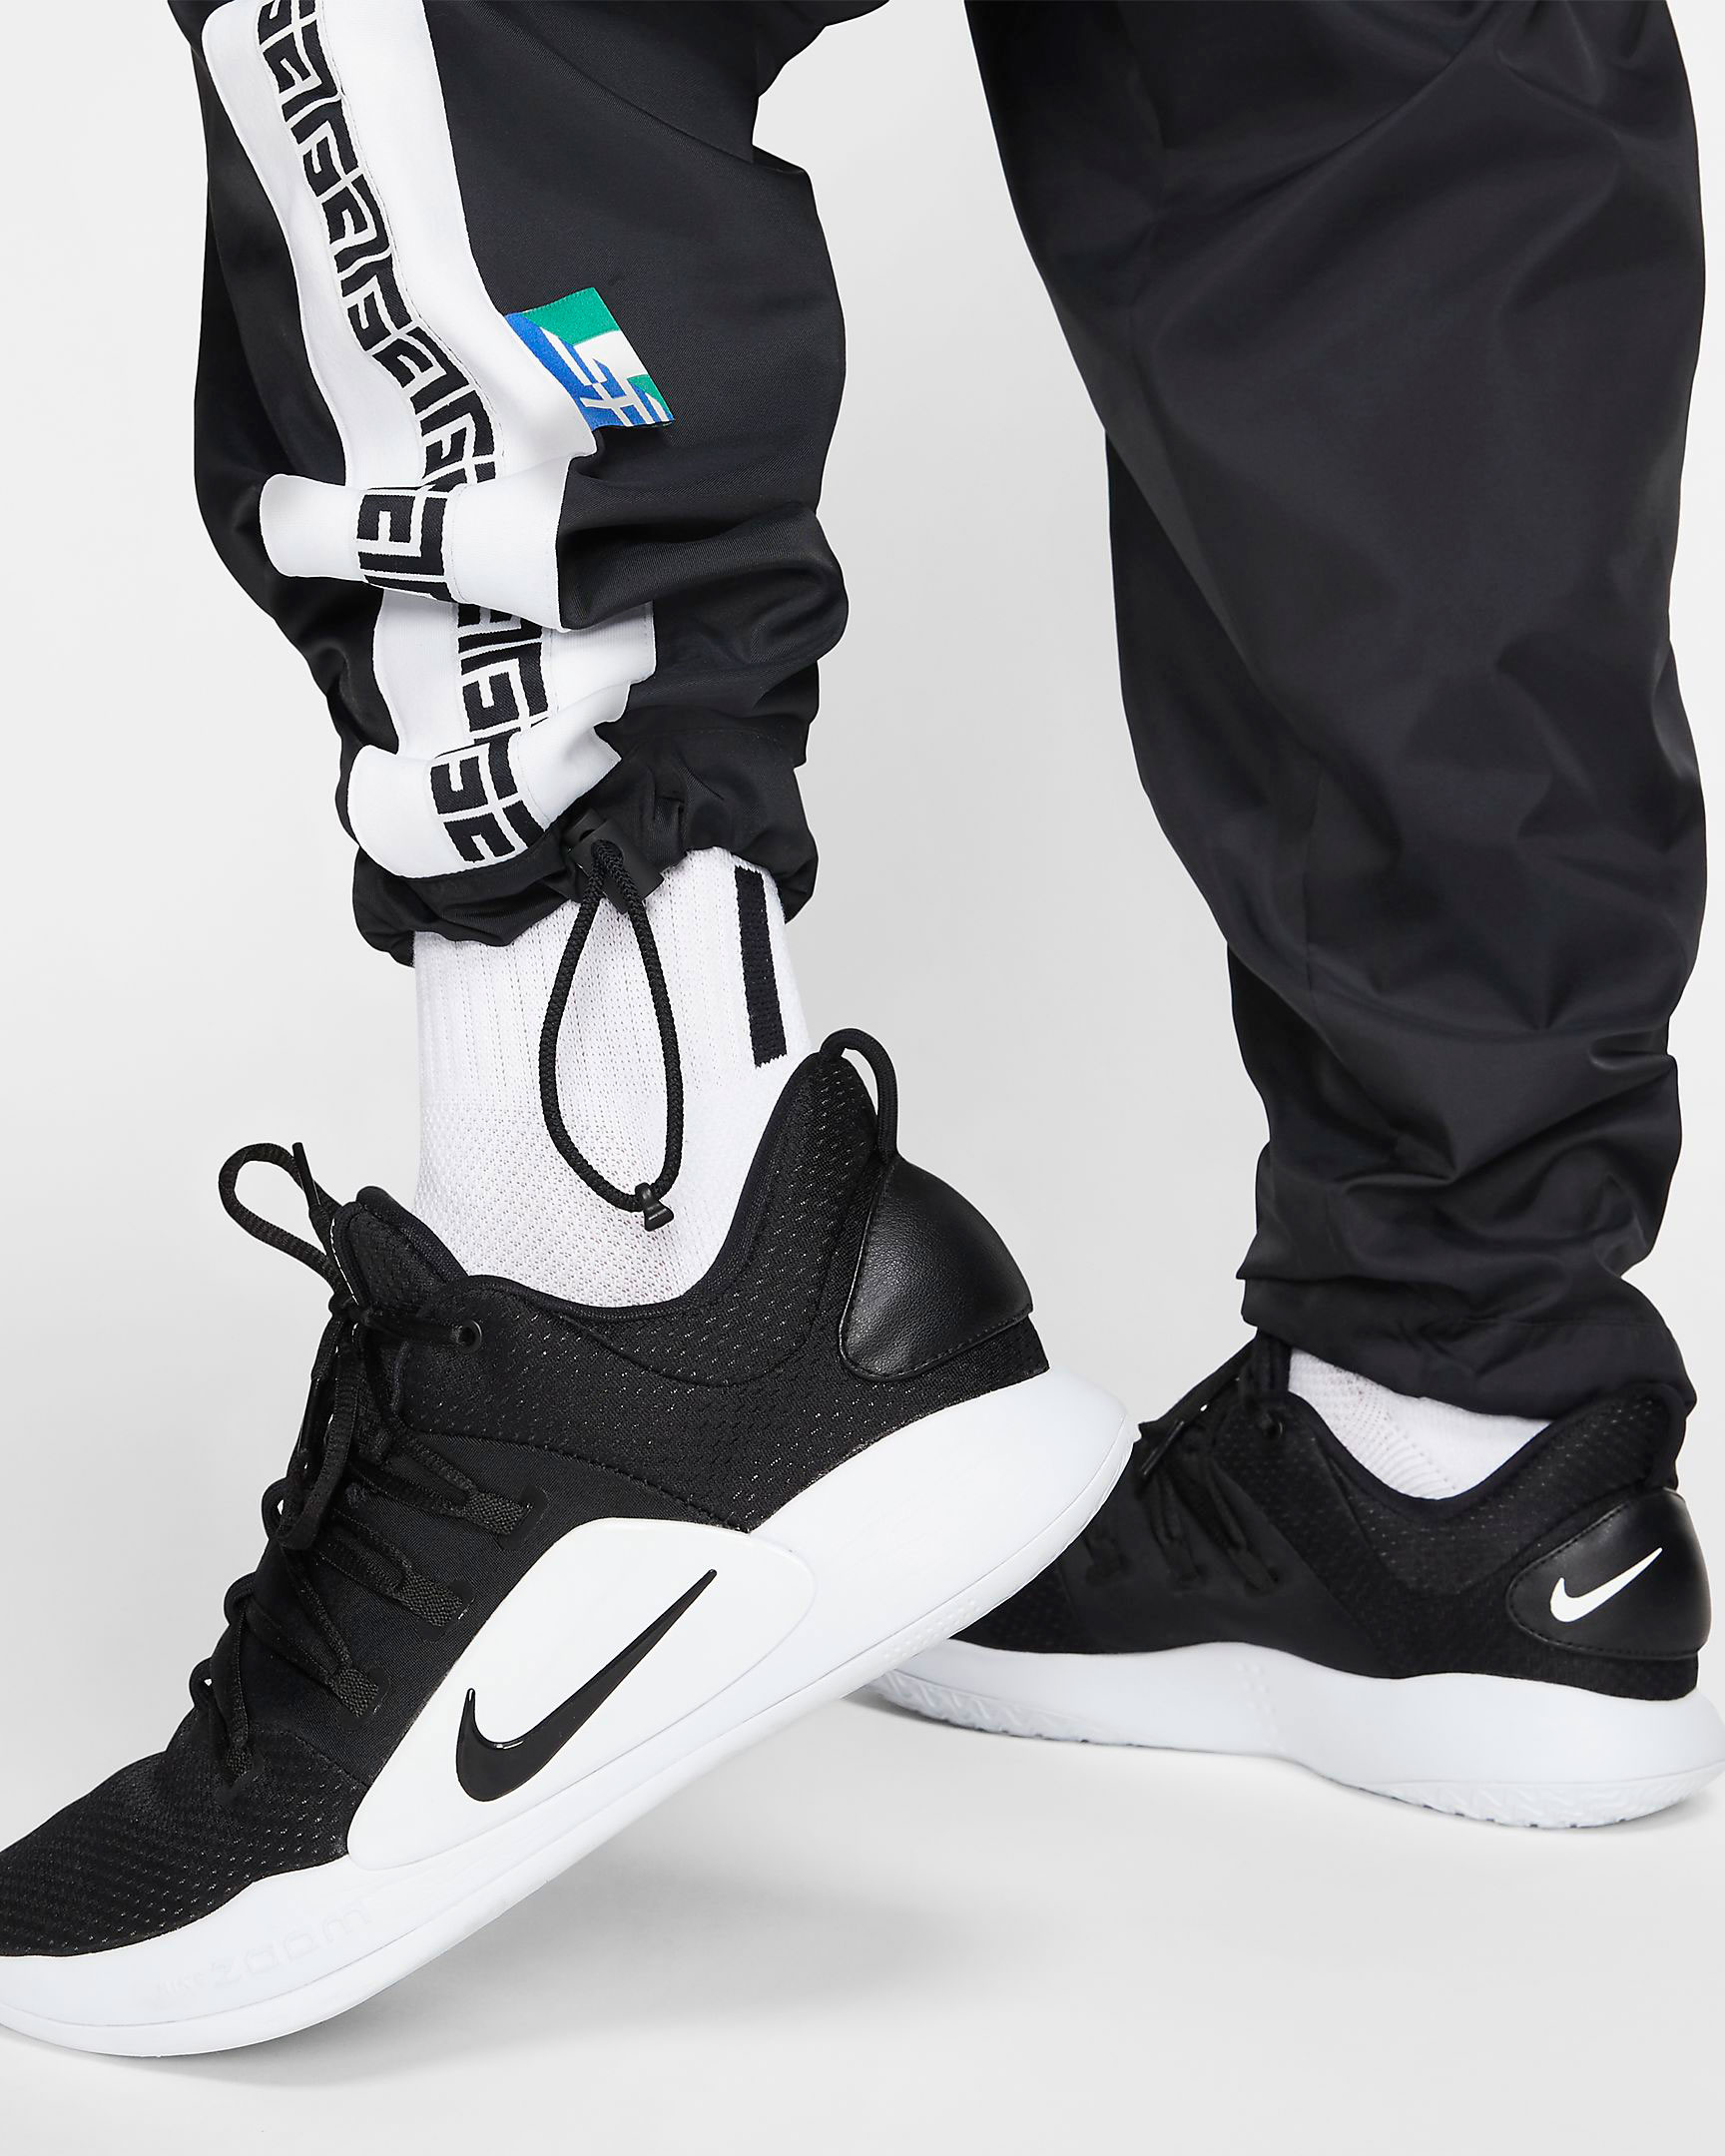 nike-zoom-freak-1-black-white-giannis-pants-2